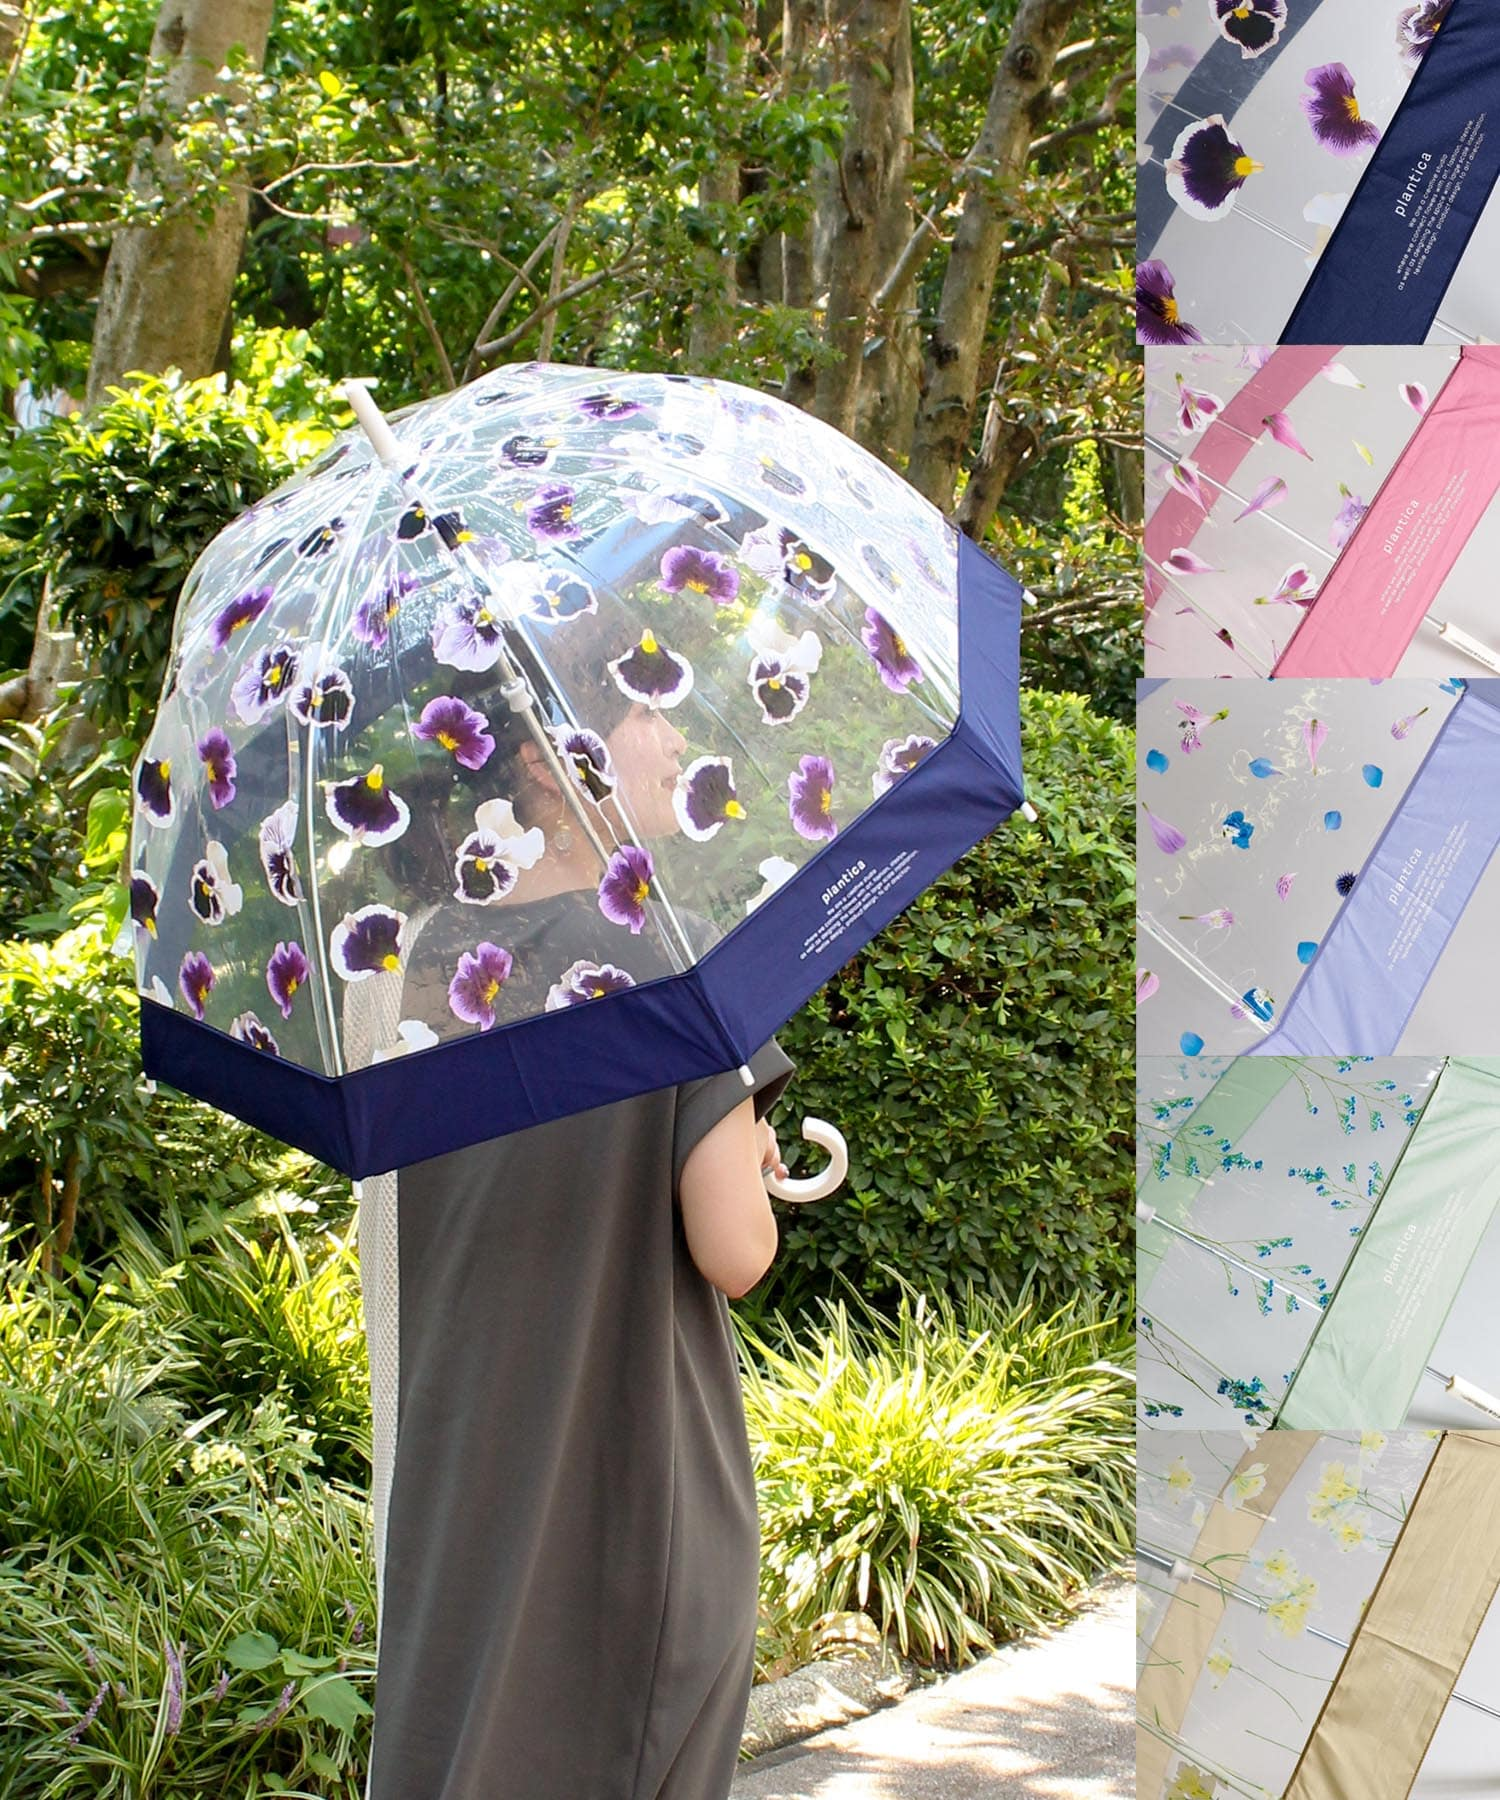 【wpc】FLOWER UMBRELLA PLASTIC